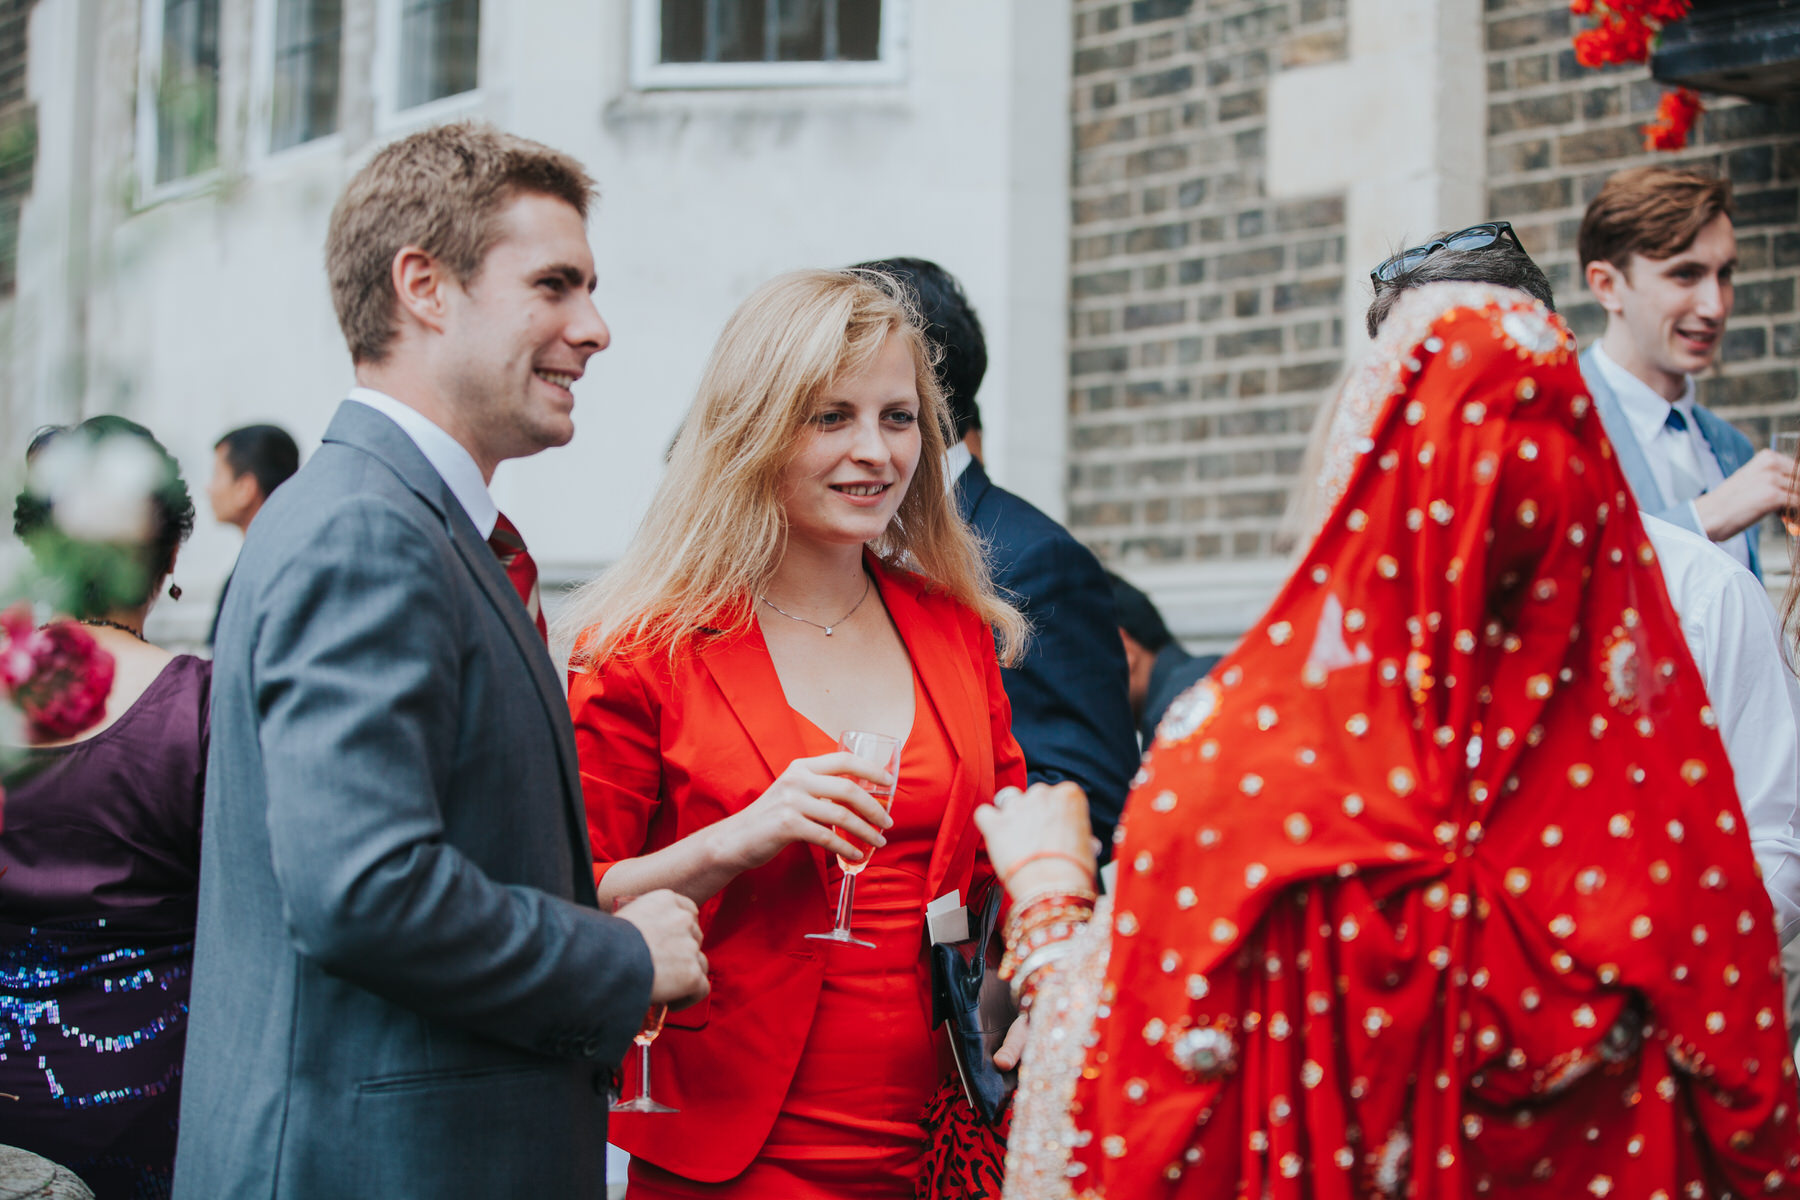 123-Anglo-Asian-Wedding-Middle-temple-guests-talking-bride.jpg